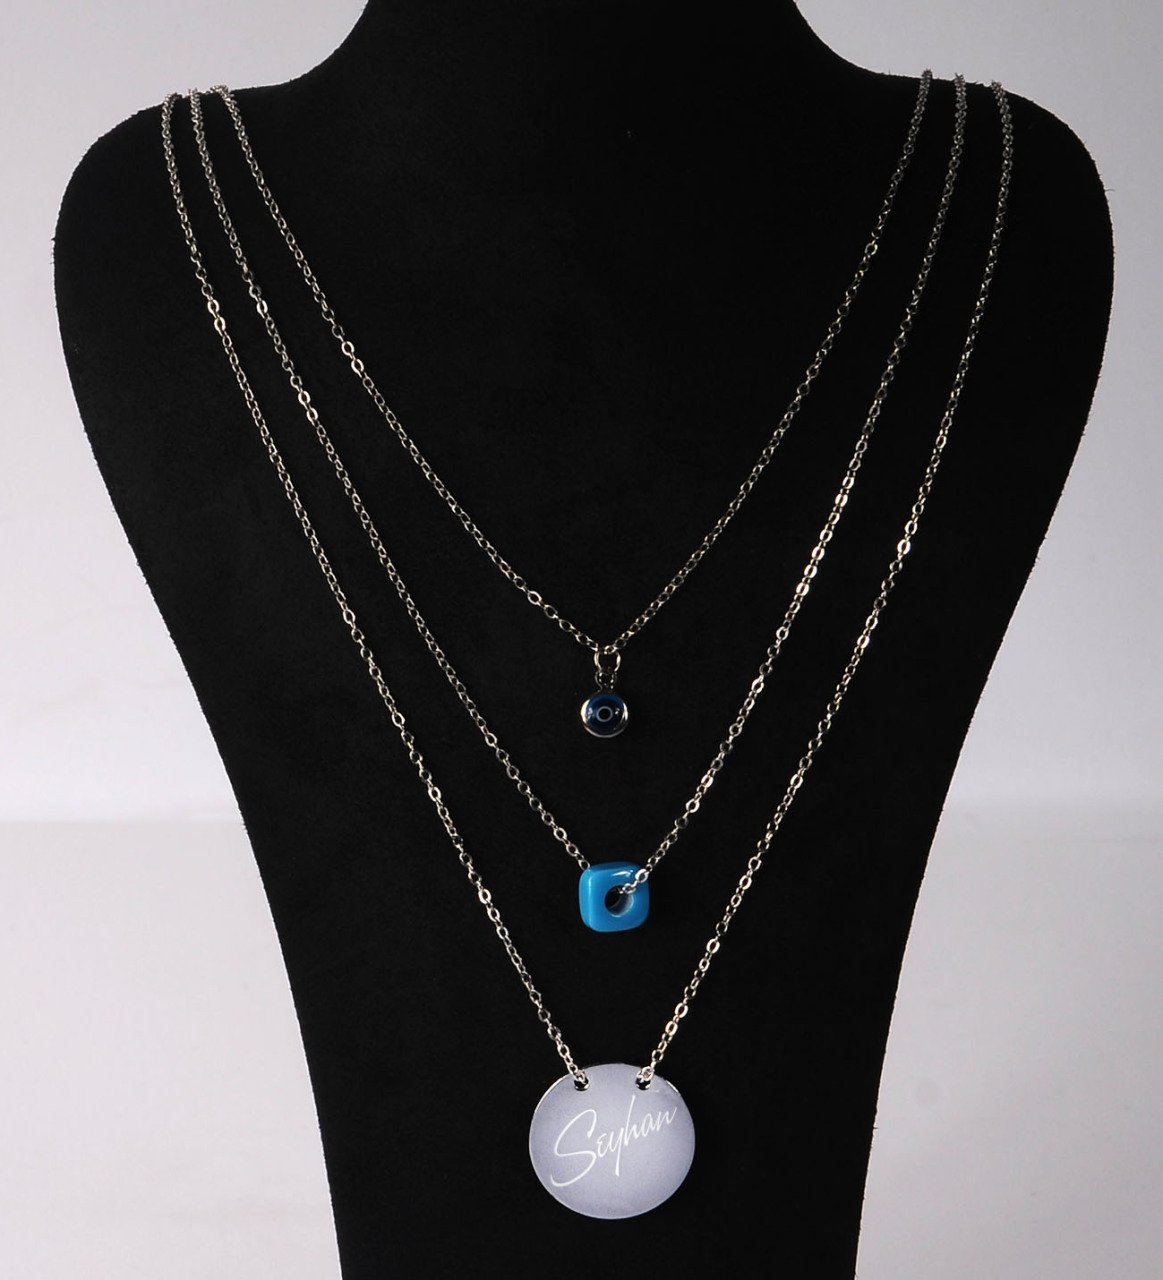 Personalized Is Three-Chained Round Evil Eye Beads Necklace